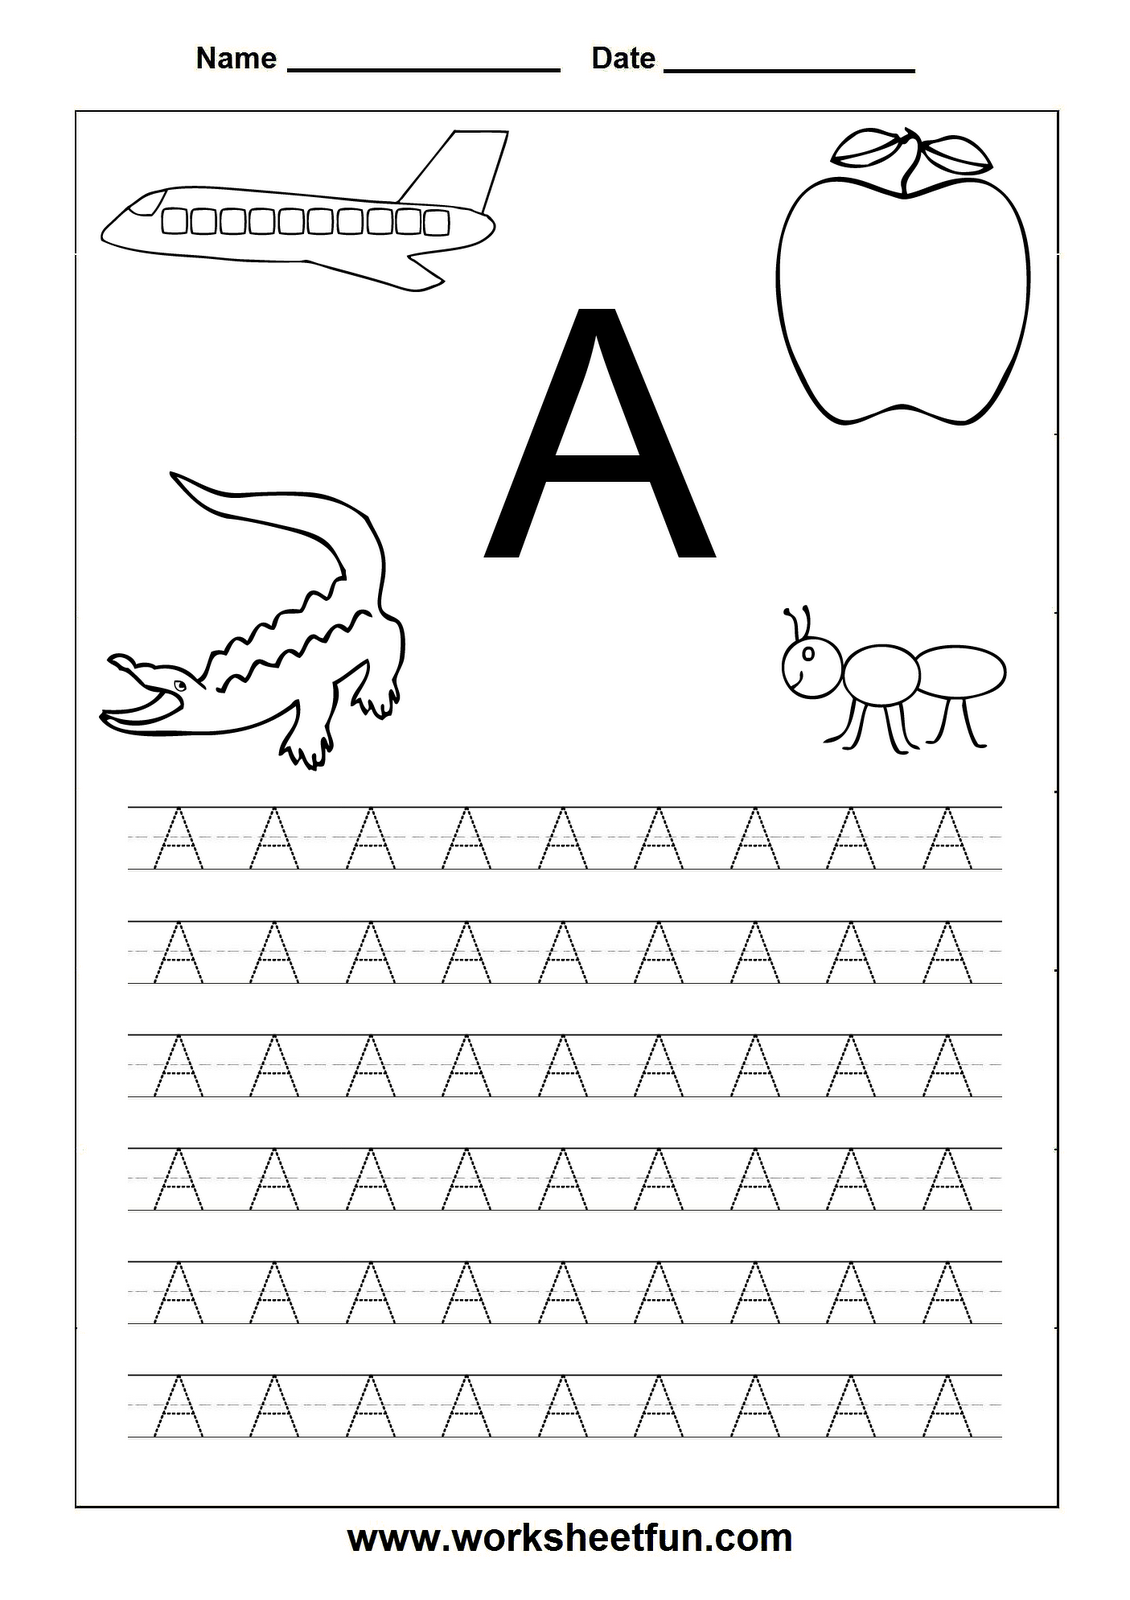 Worksheets Free Letter Worksheets For Kindergarten 1000 images about letters on pinterest handwriting worksheets letter tracing and alphabet